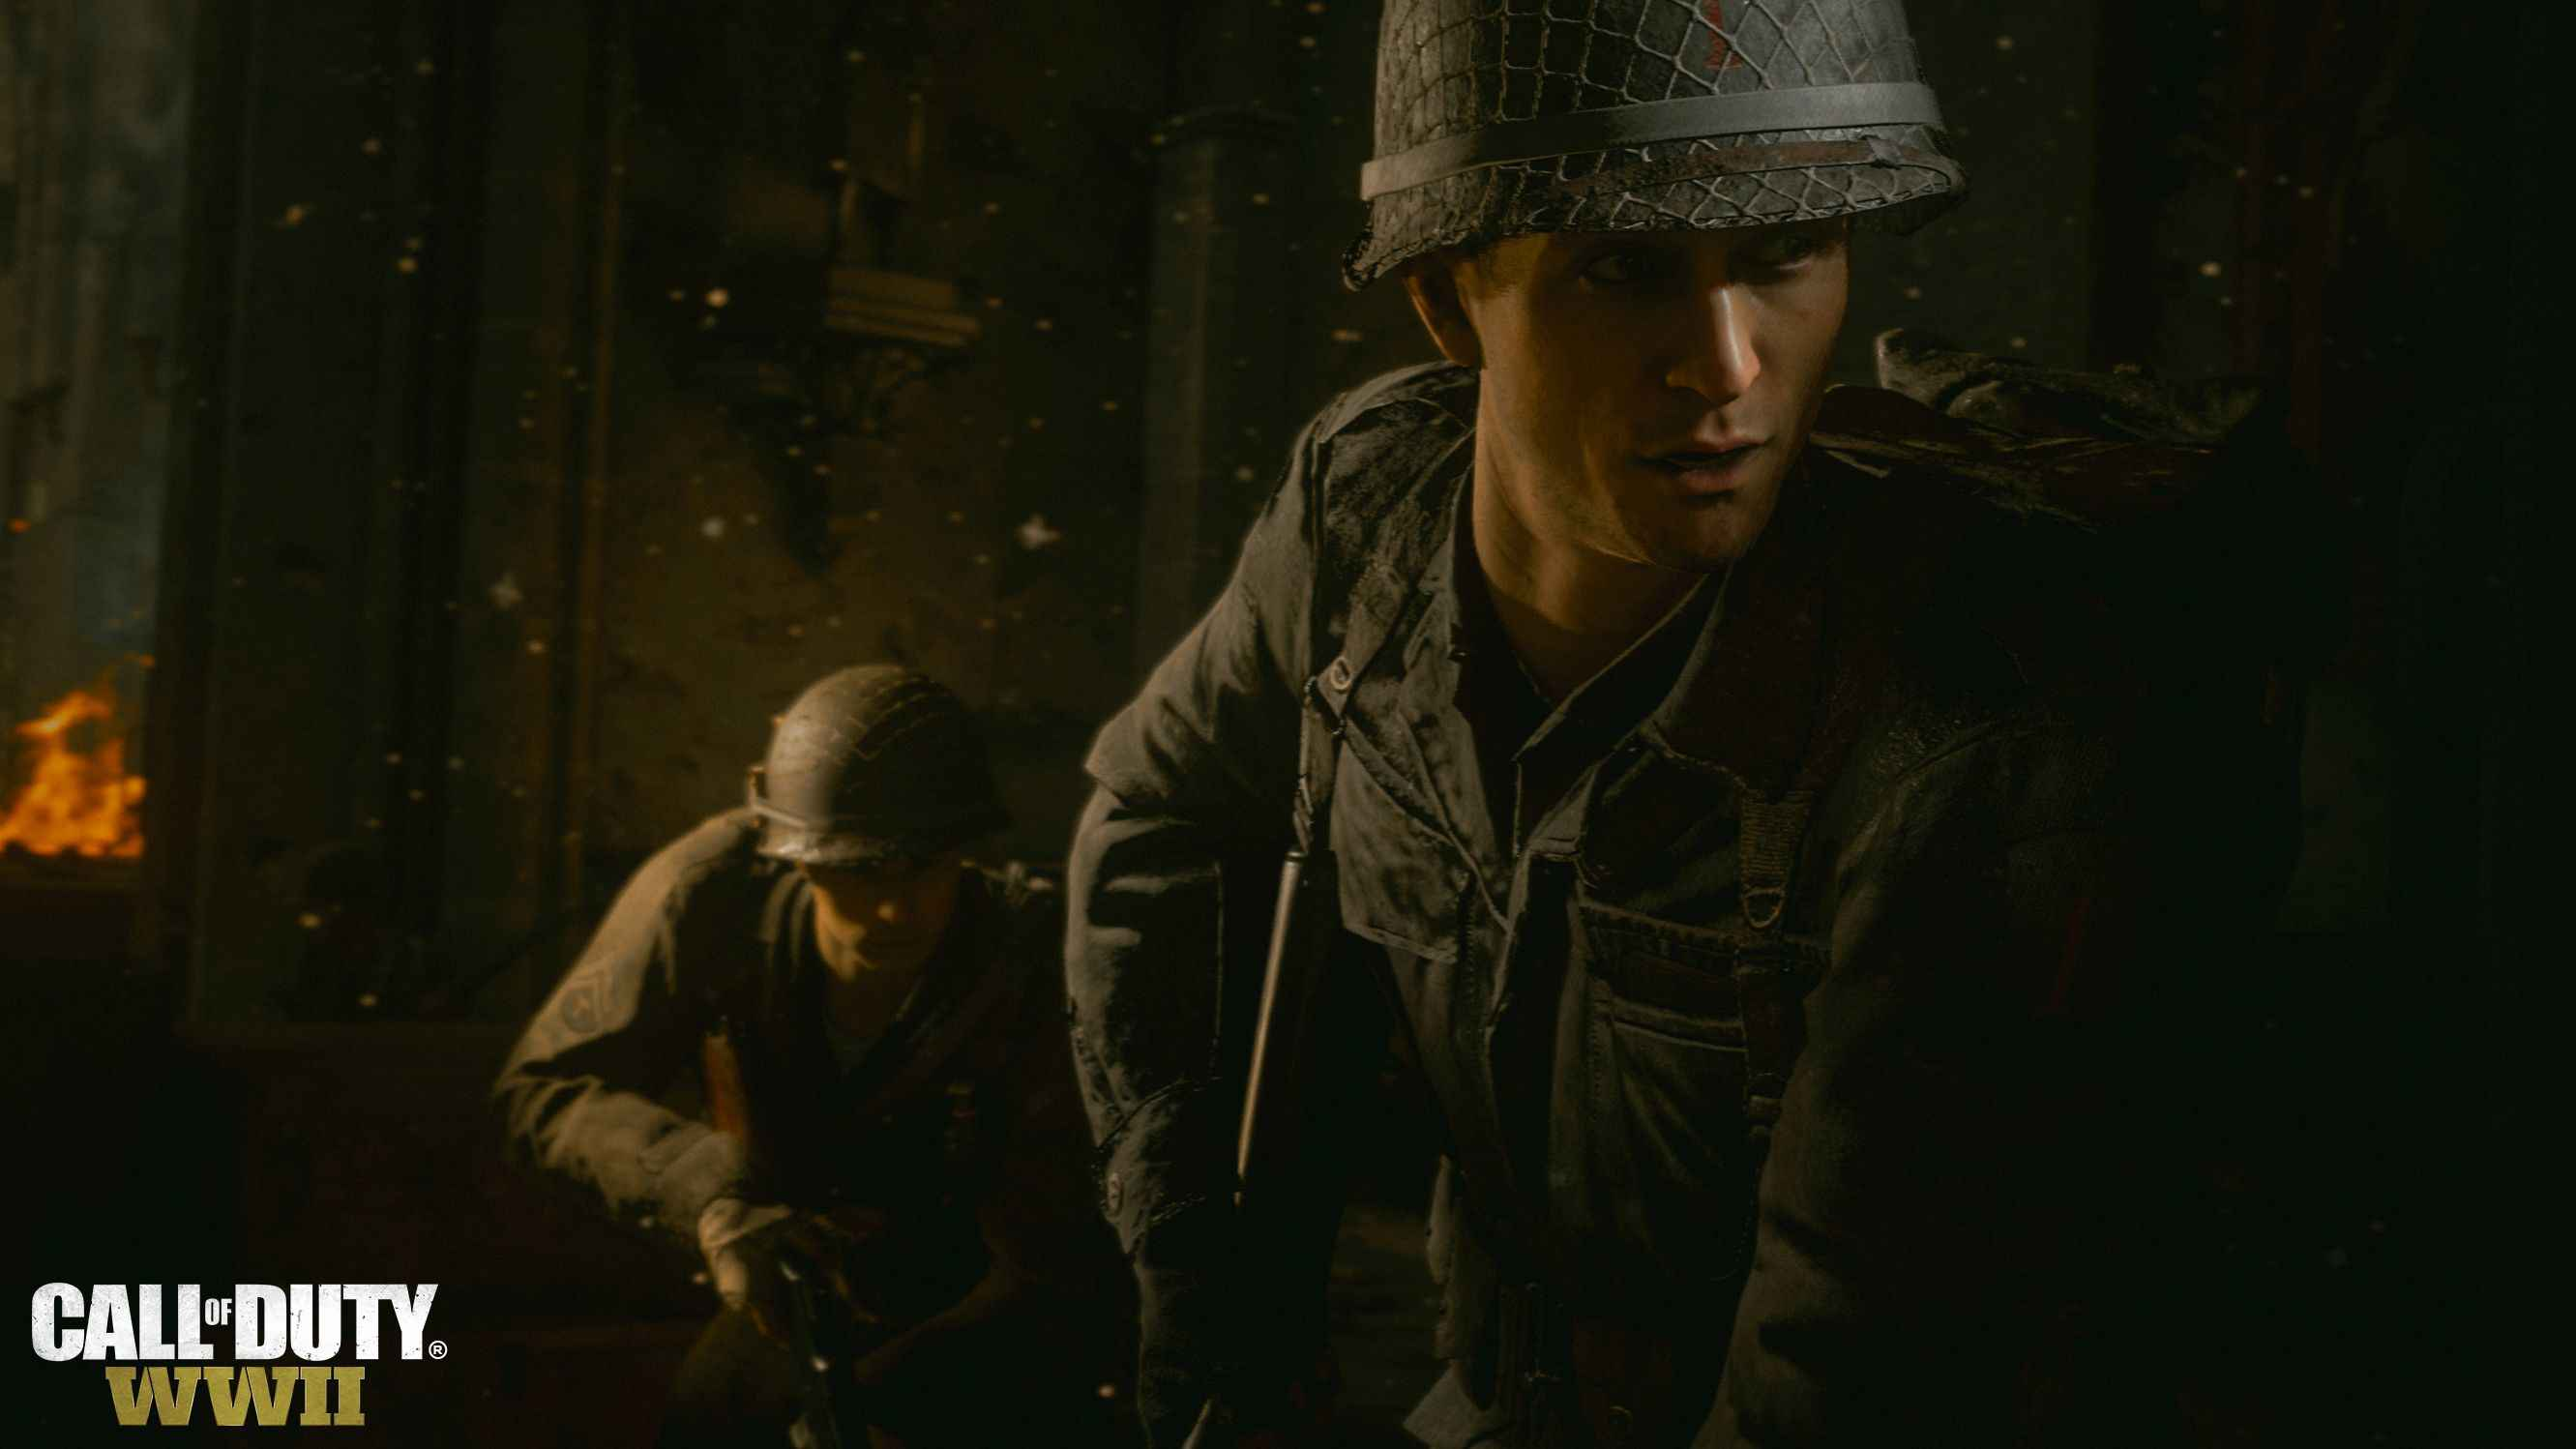 Call Of Duty: WWII Update Arrives With Resistance Event